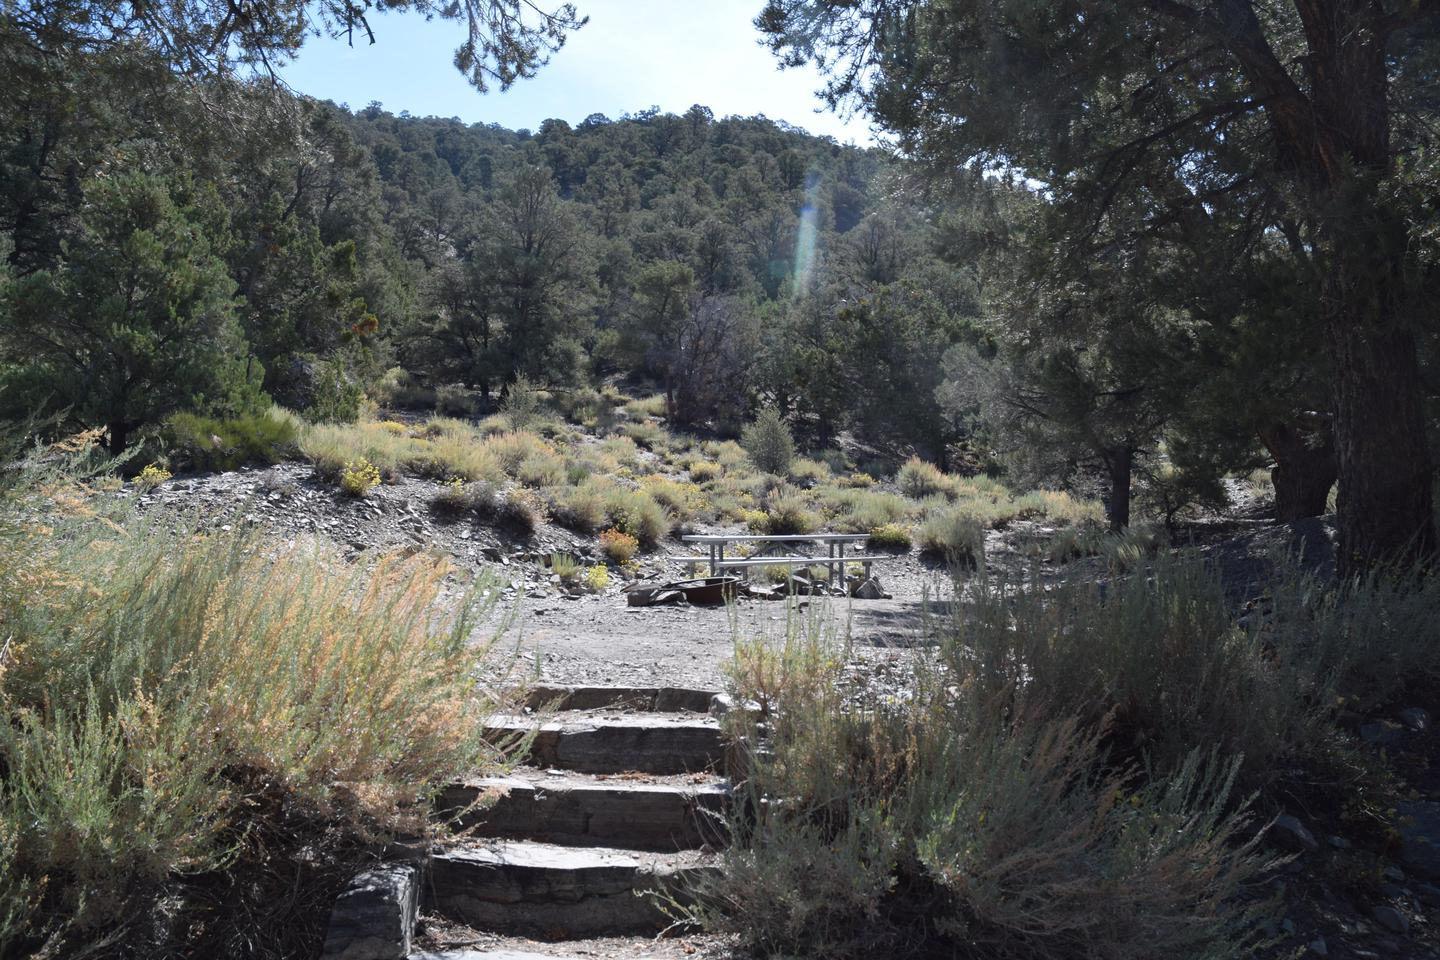 Thorndike CampgroundThis primitive campground is within a pinyon pine and juniper forest.